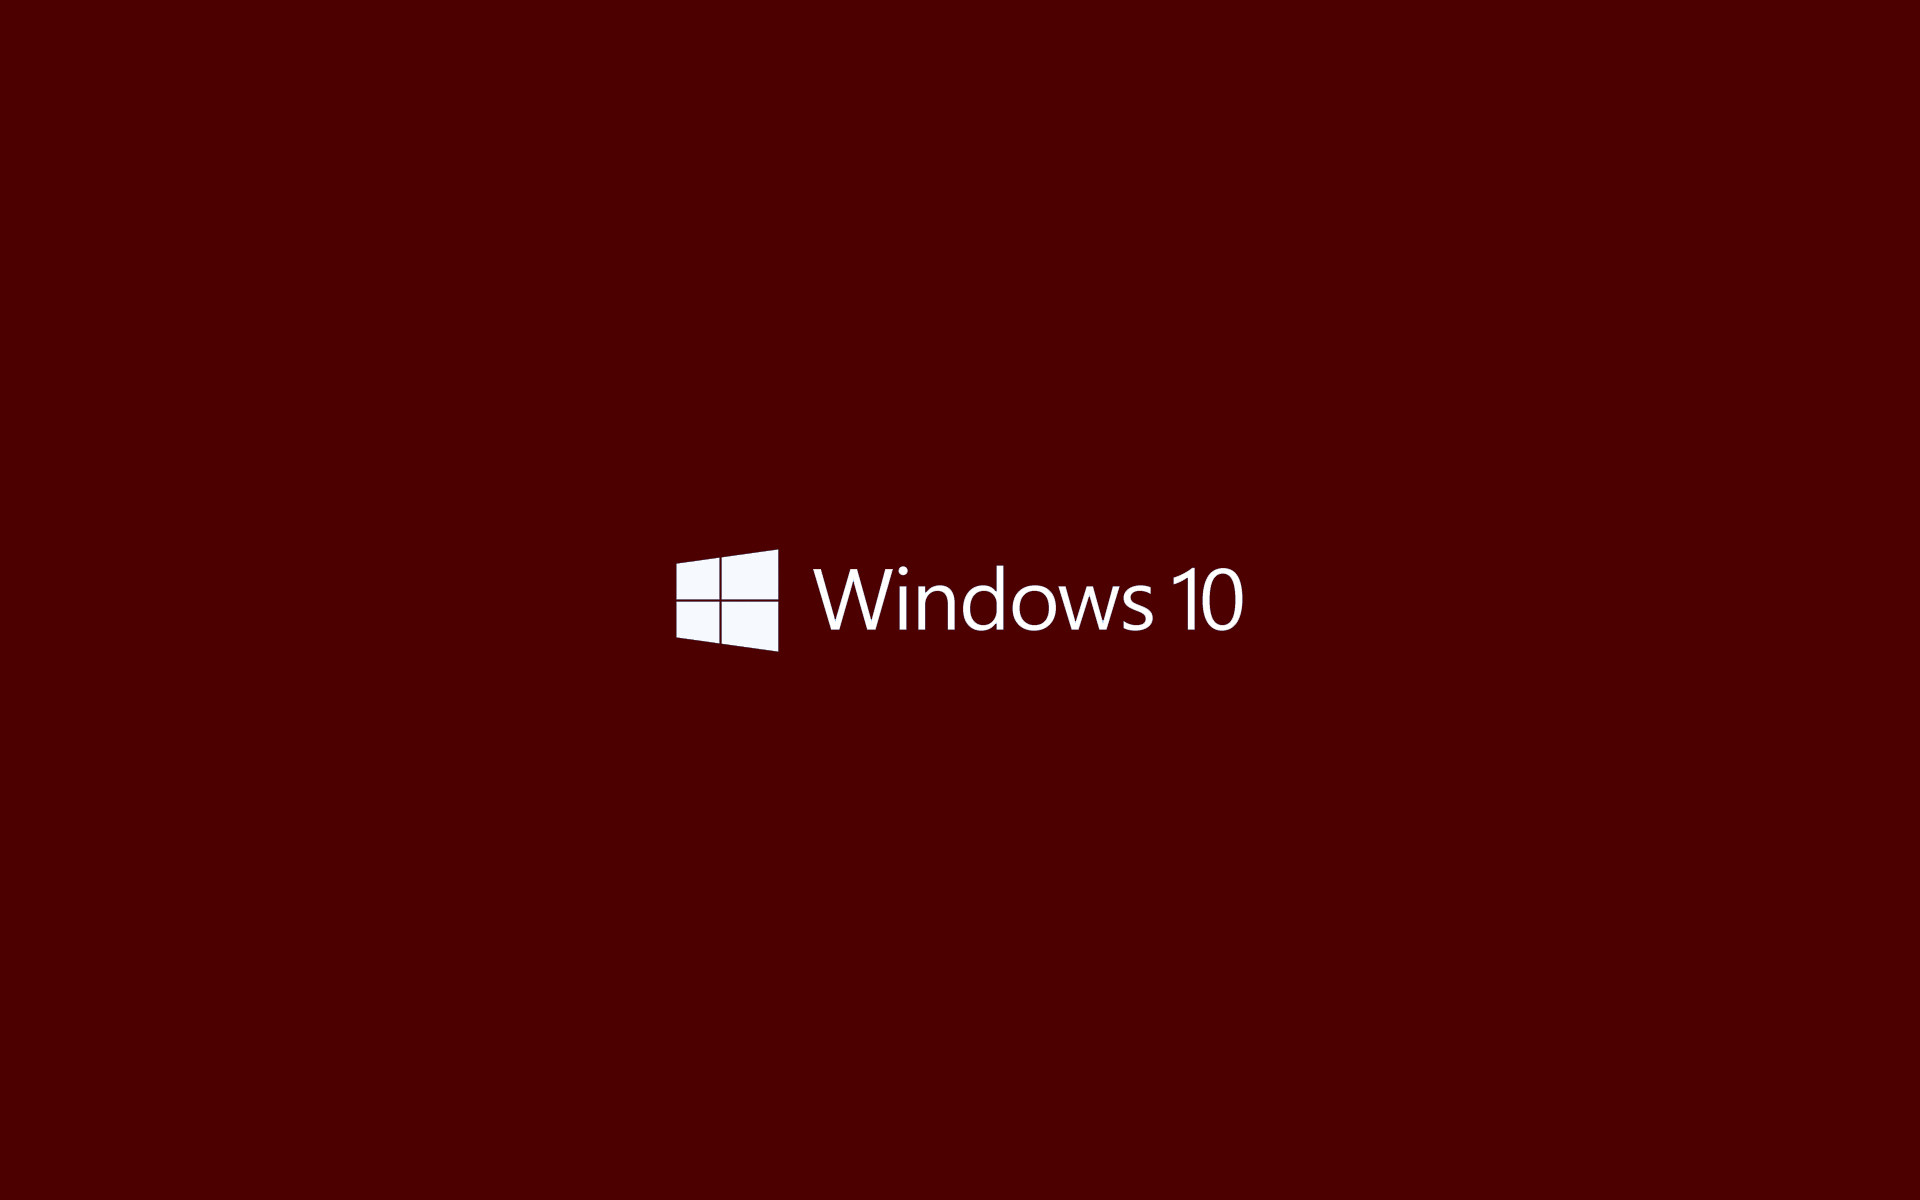 Windows 10 Original 1